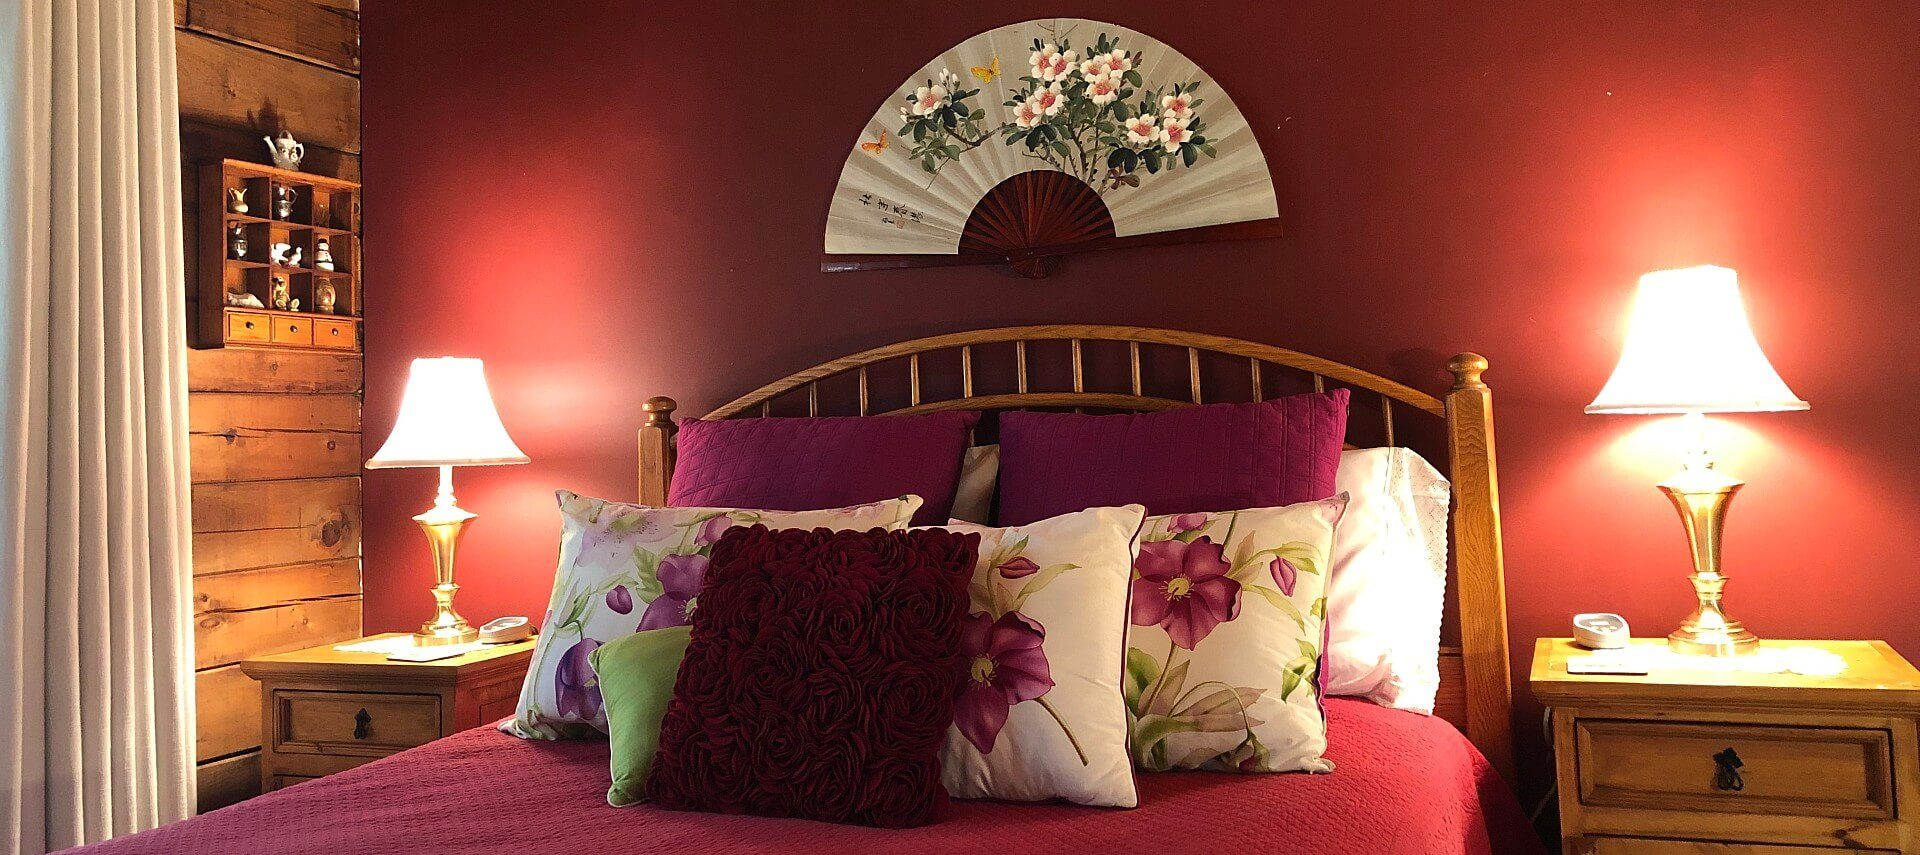 Queen bed with wood headboard and red bedding, two side tables with lamps against a red wall